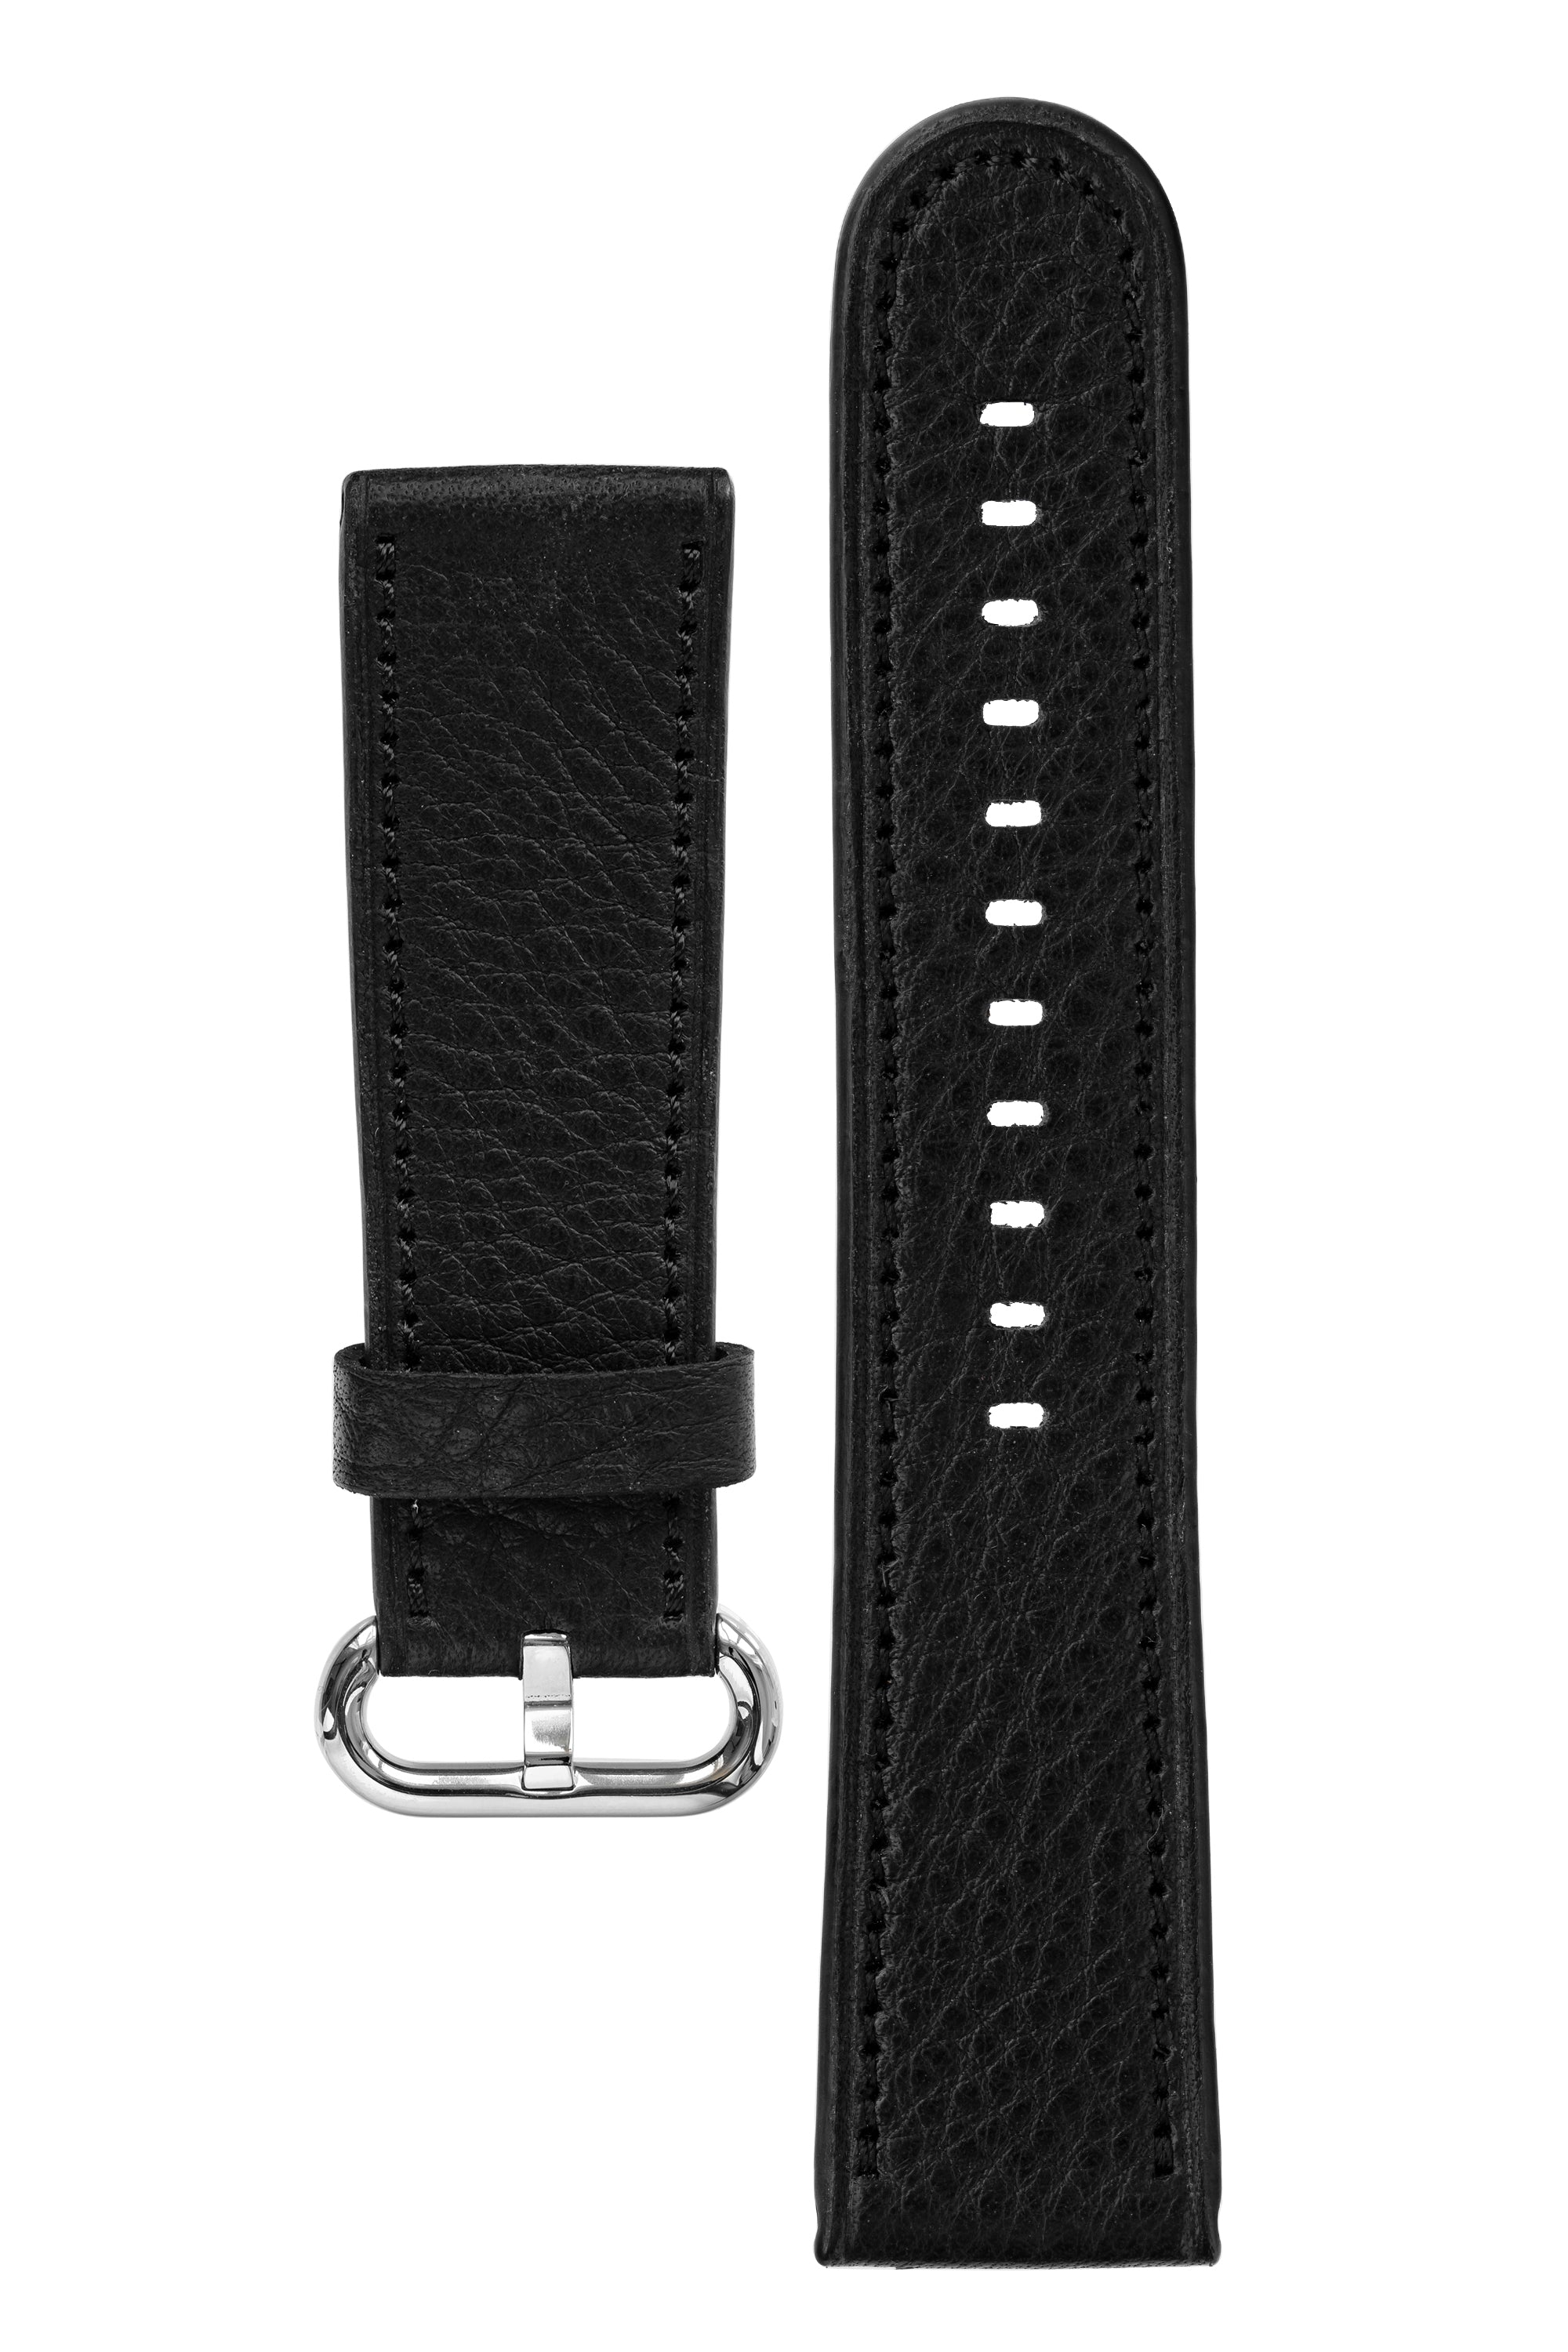 Rios1931 ONLINE Organic Leather Watch Strap for 42 / 44mm Apple Watch in BLACK